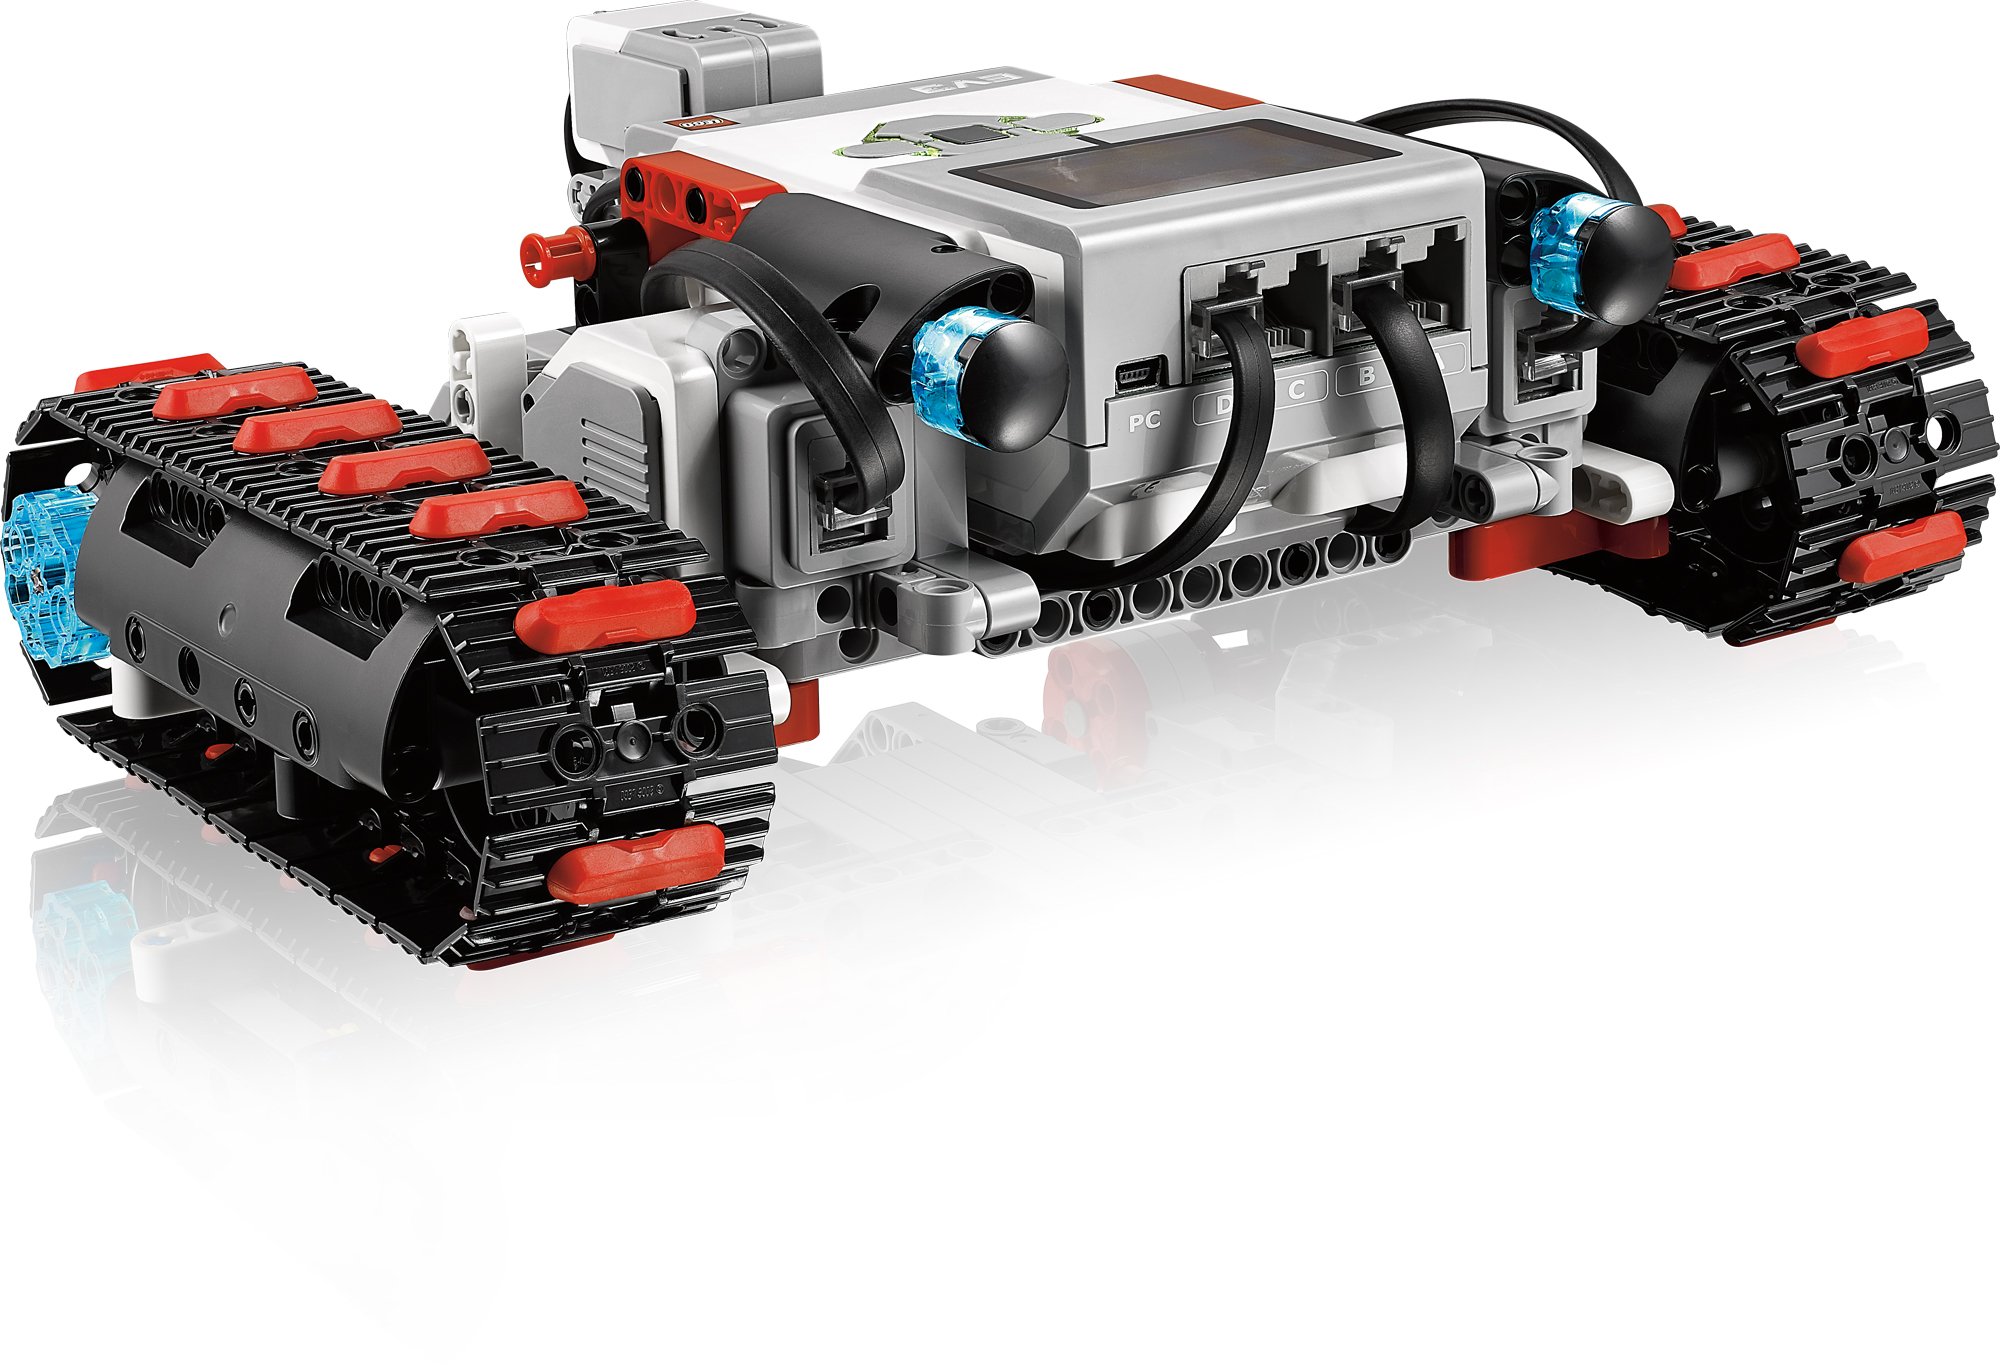 Lego Mindstorms Ev3 Now Available In Europe And In Stock